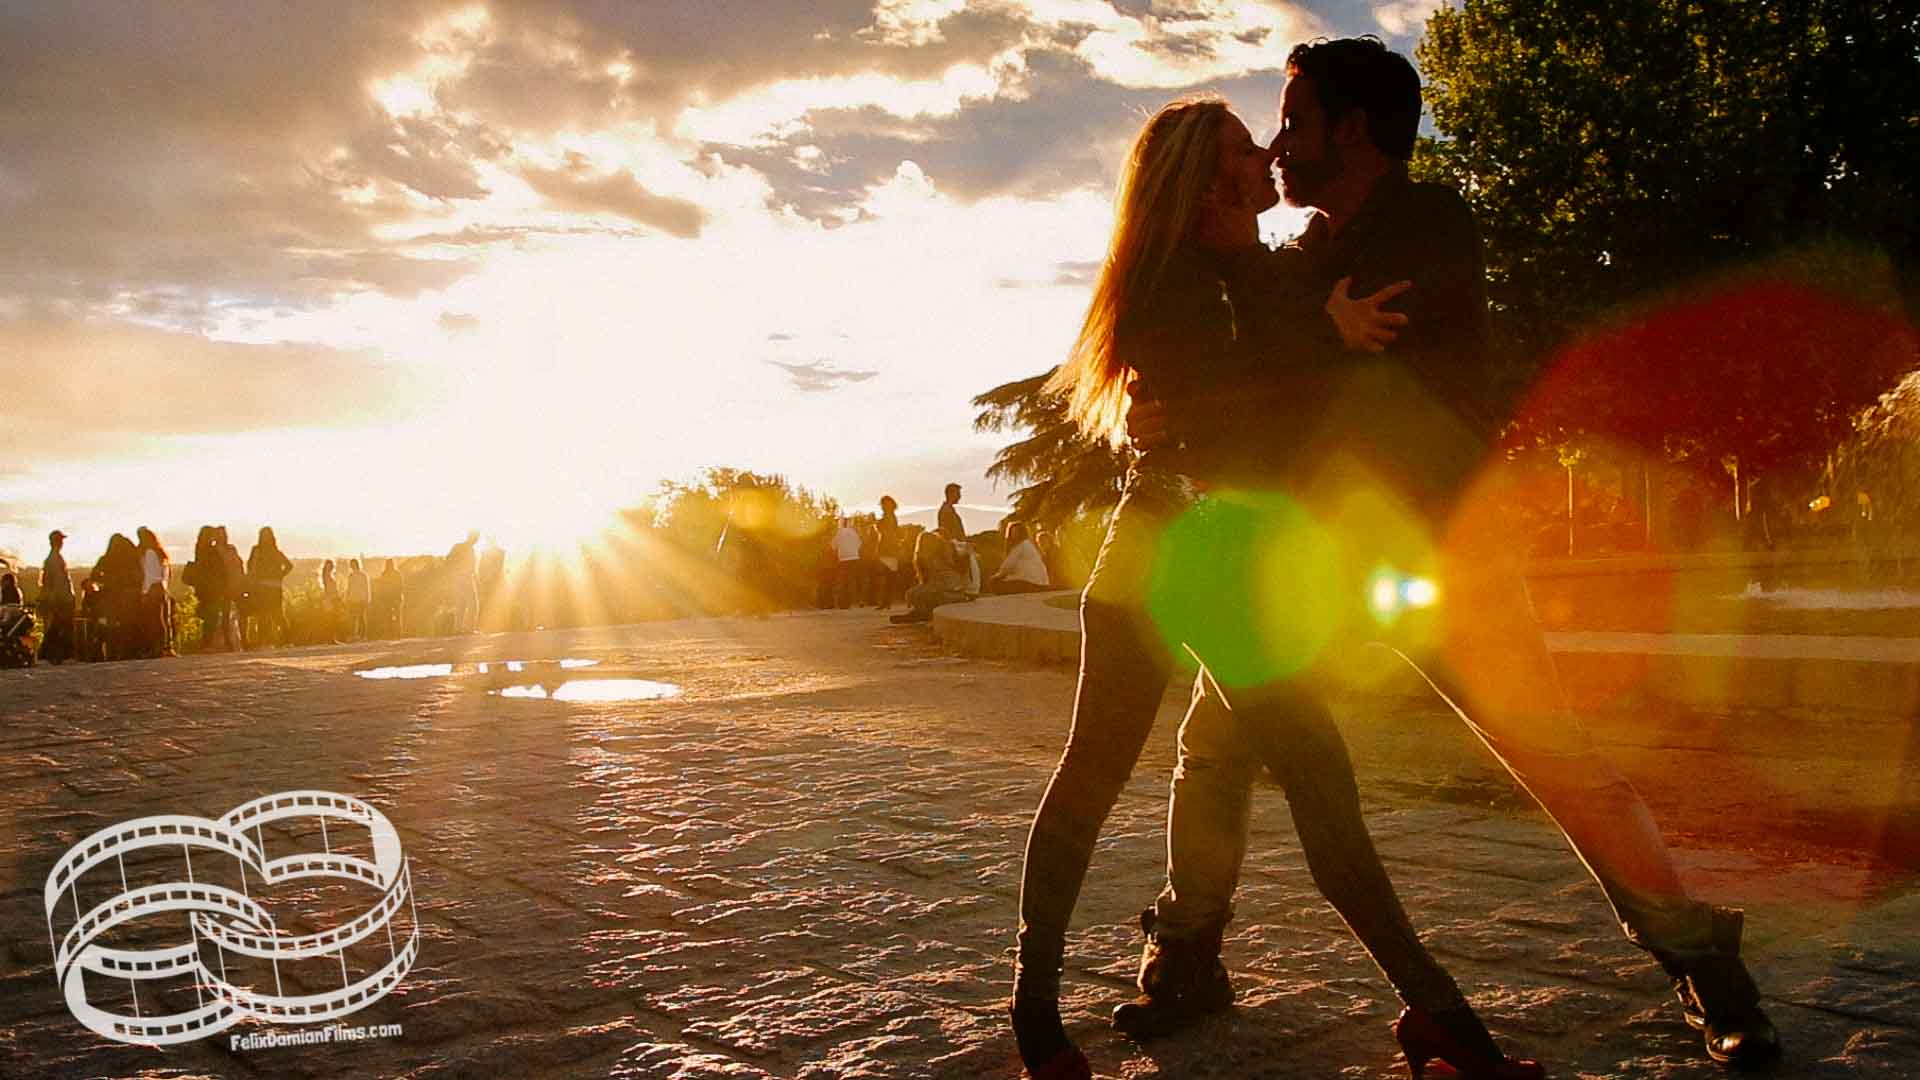 Engagement photographer and videographer in Madrid